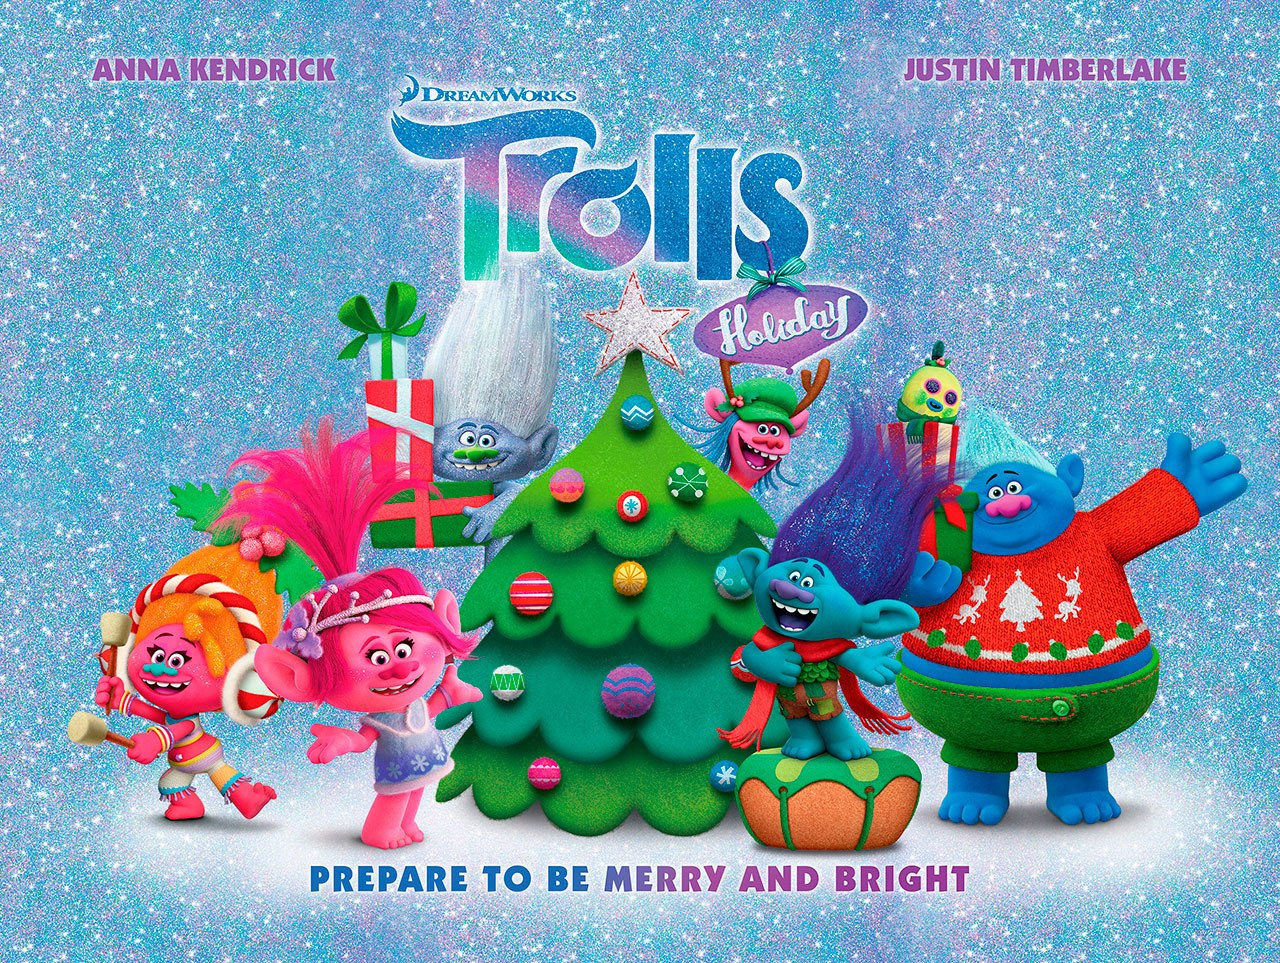 DreamWorks Trolls Holiday Special Will Premiere Dec 10 In The UK On Channel 5